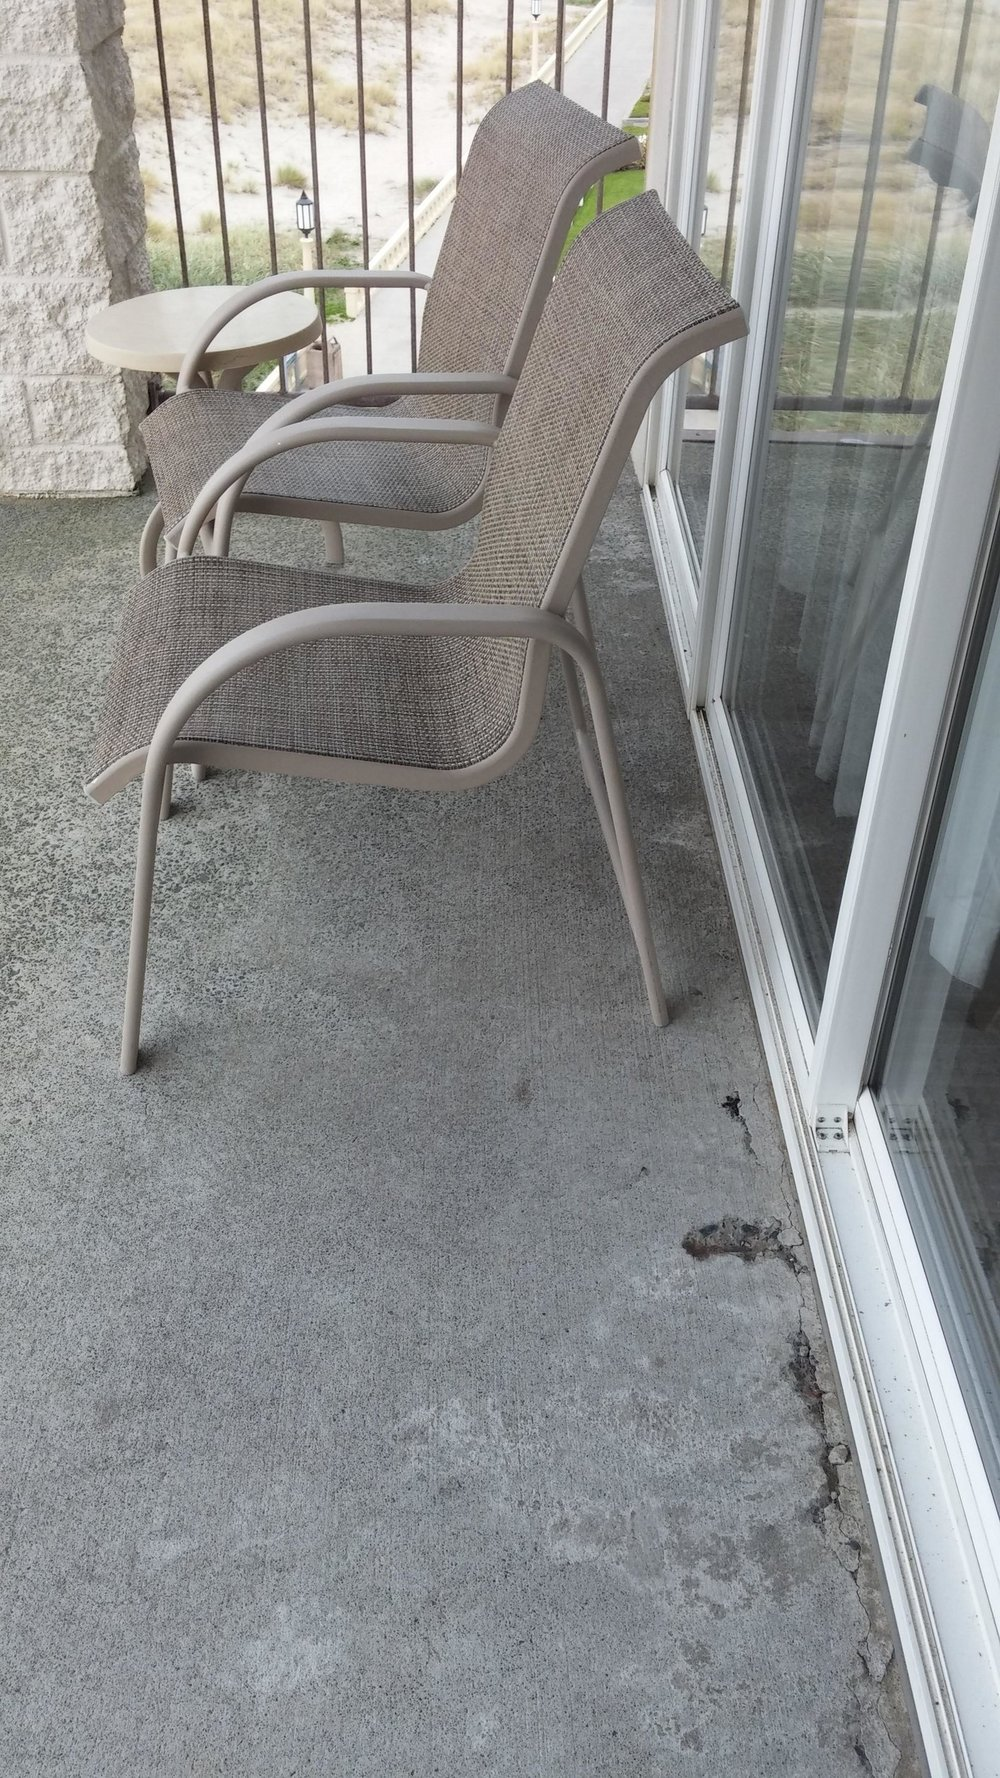 Crack in concrete 5th floor balcony - This could present a problem!